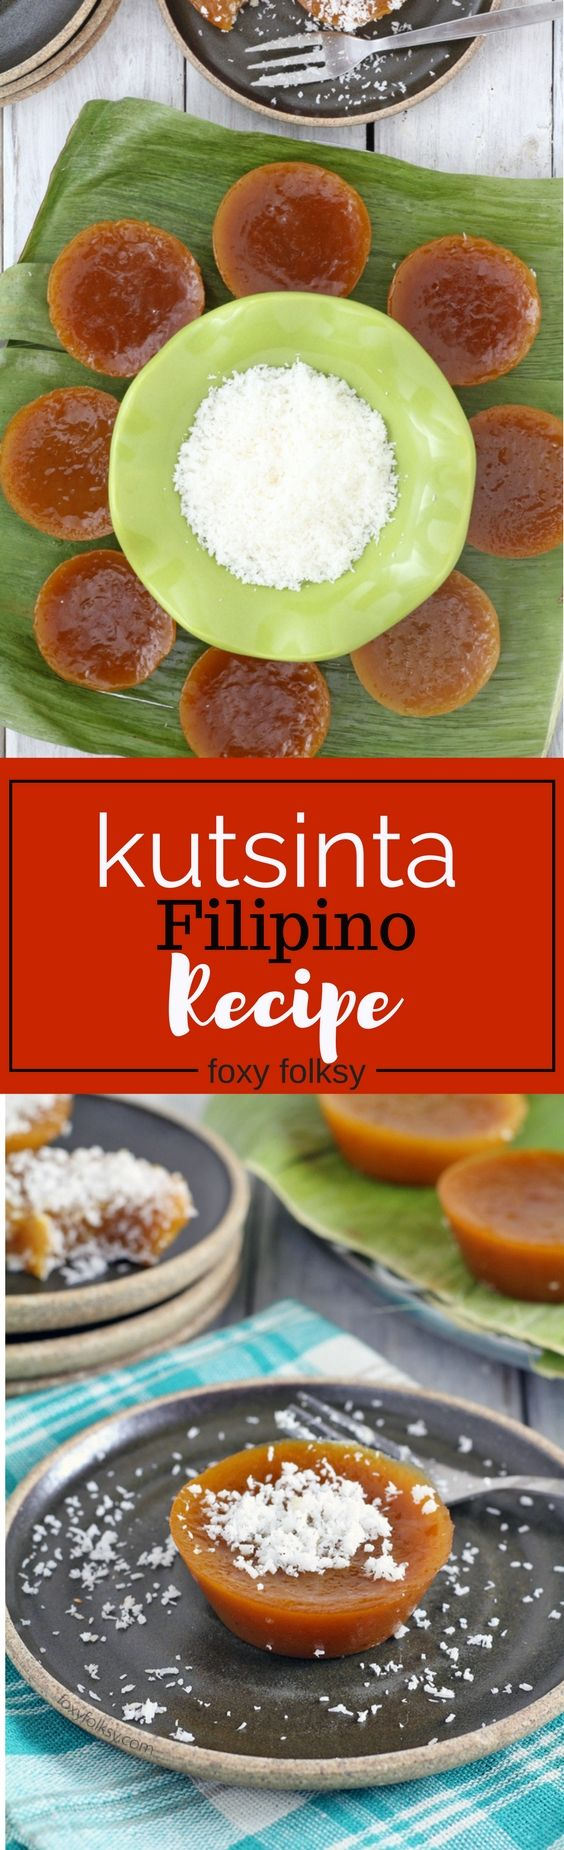 Kutsinta is a native sweet Filipino snack traditionally made from sticky rice. | www.foxyfolksy.com